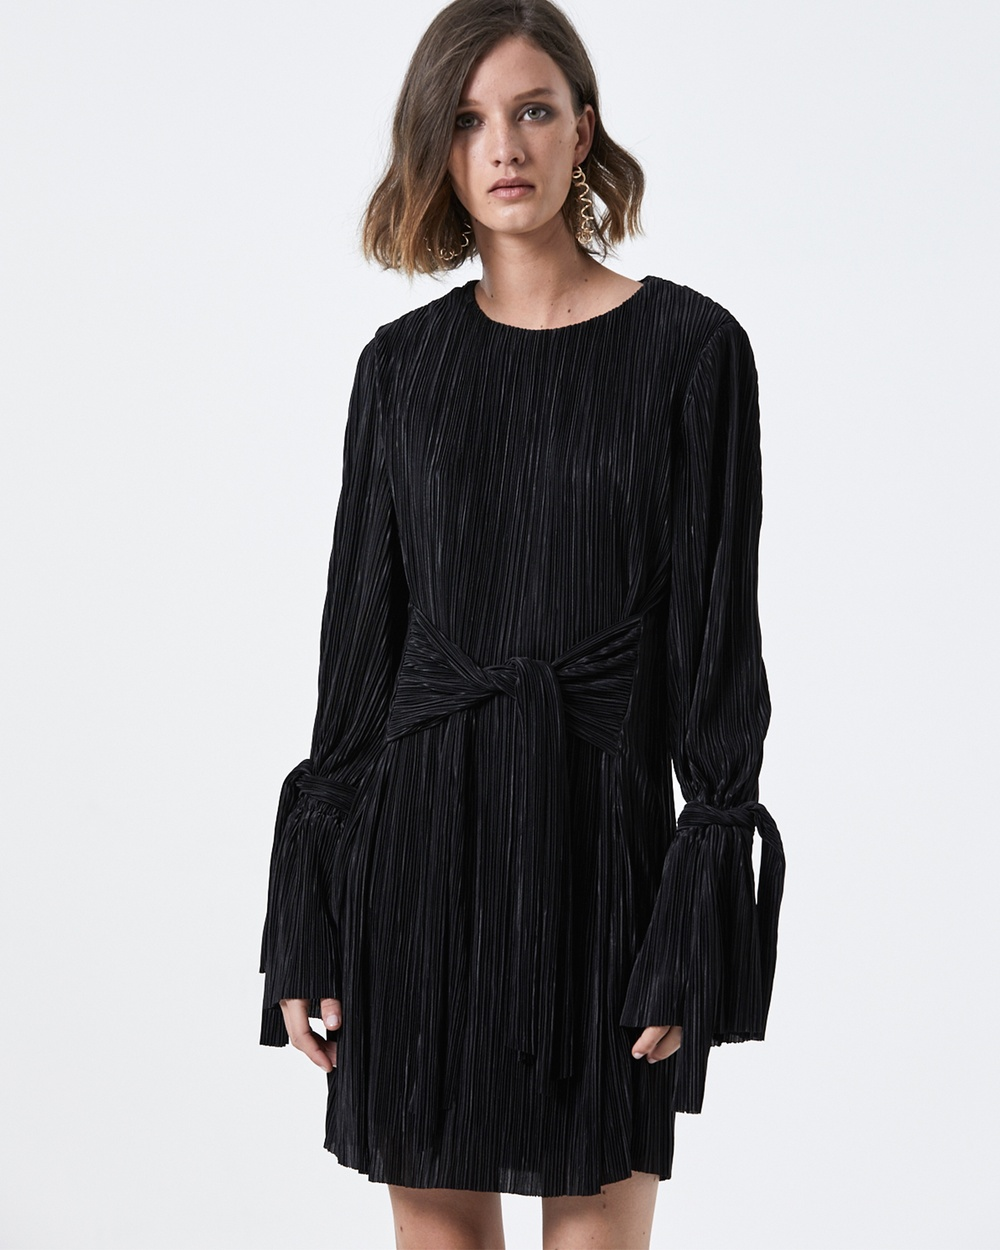 Buy Carver Yvette Sleeved Dress Dresses Black Yvette Sleeved Dress - shop Carver dresses online